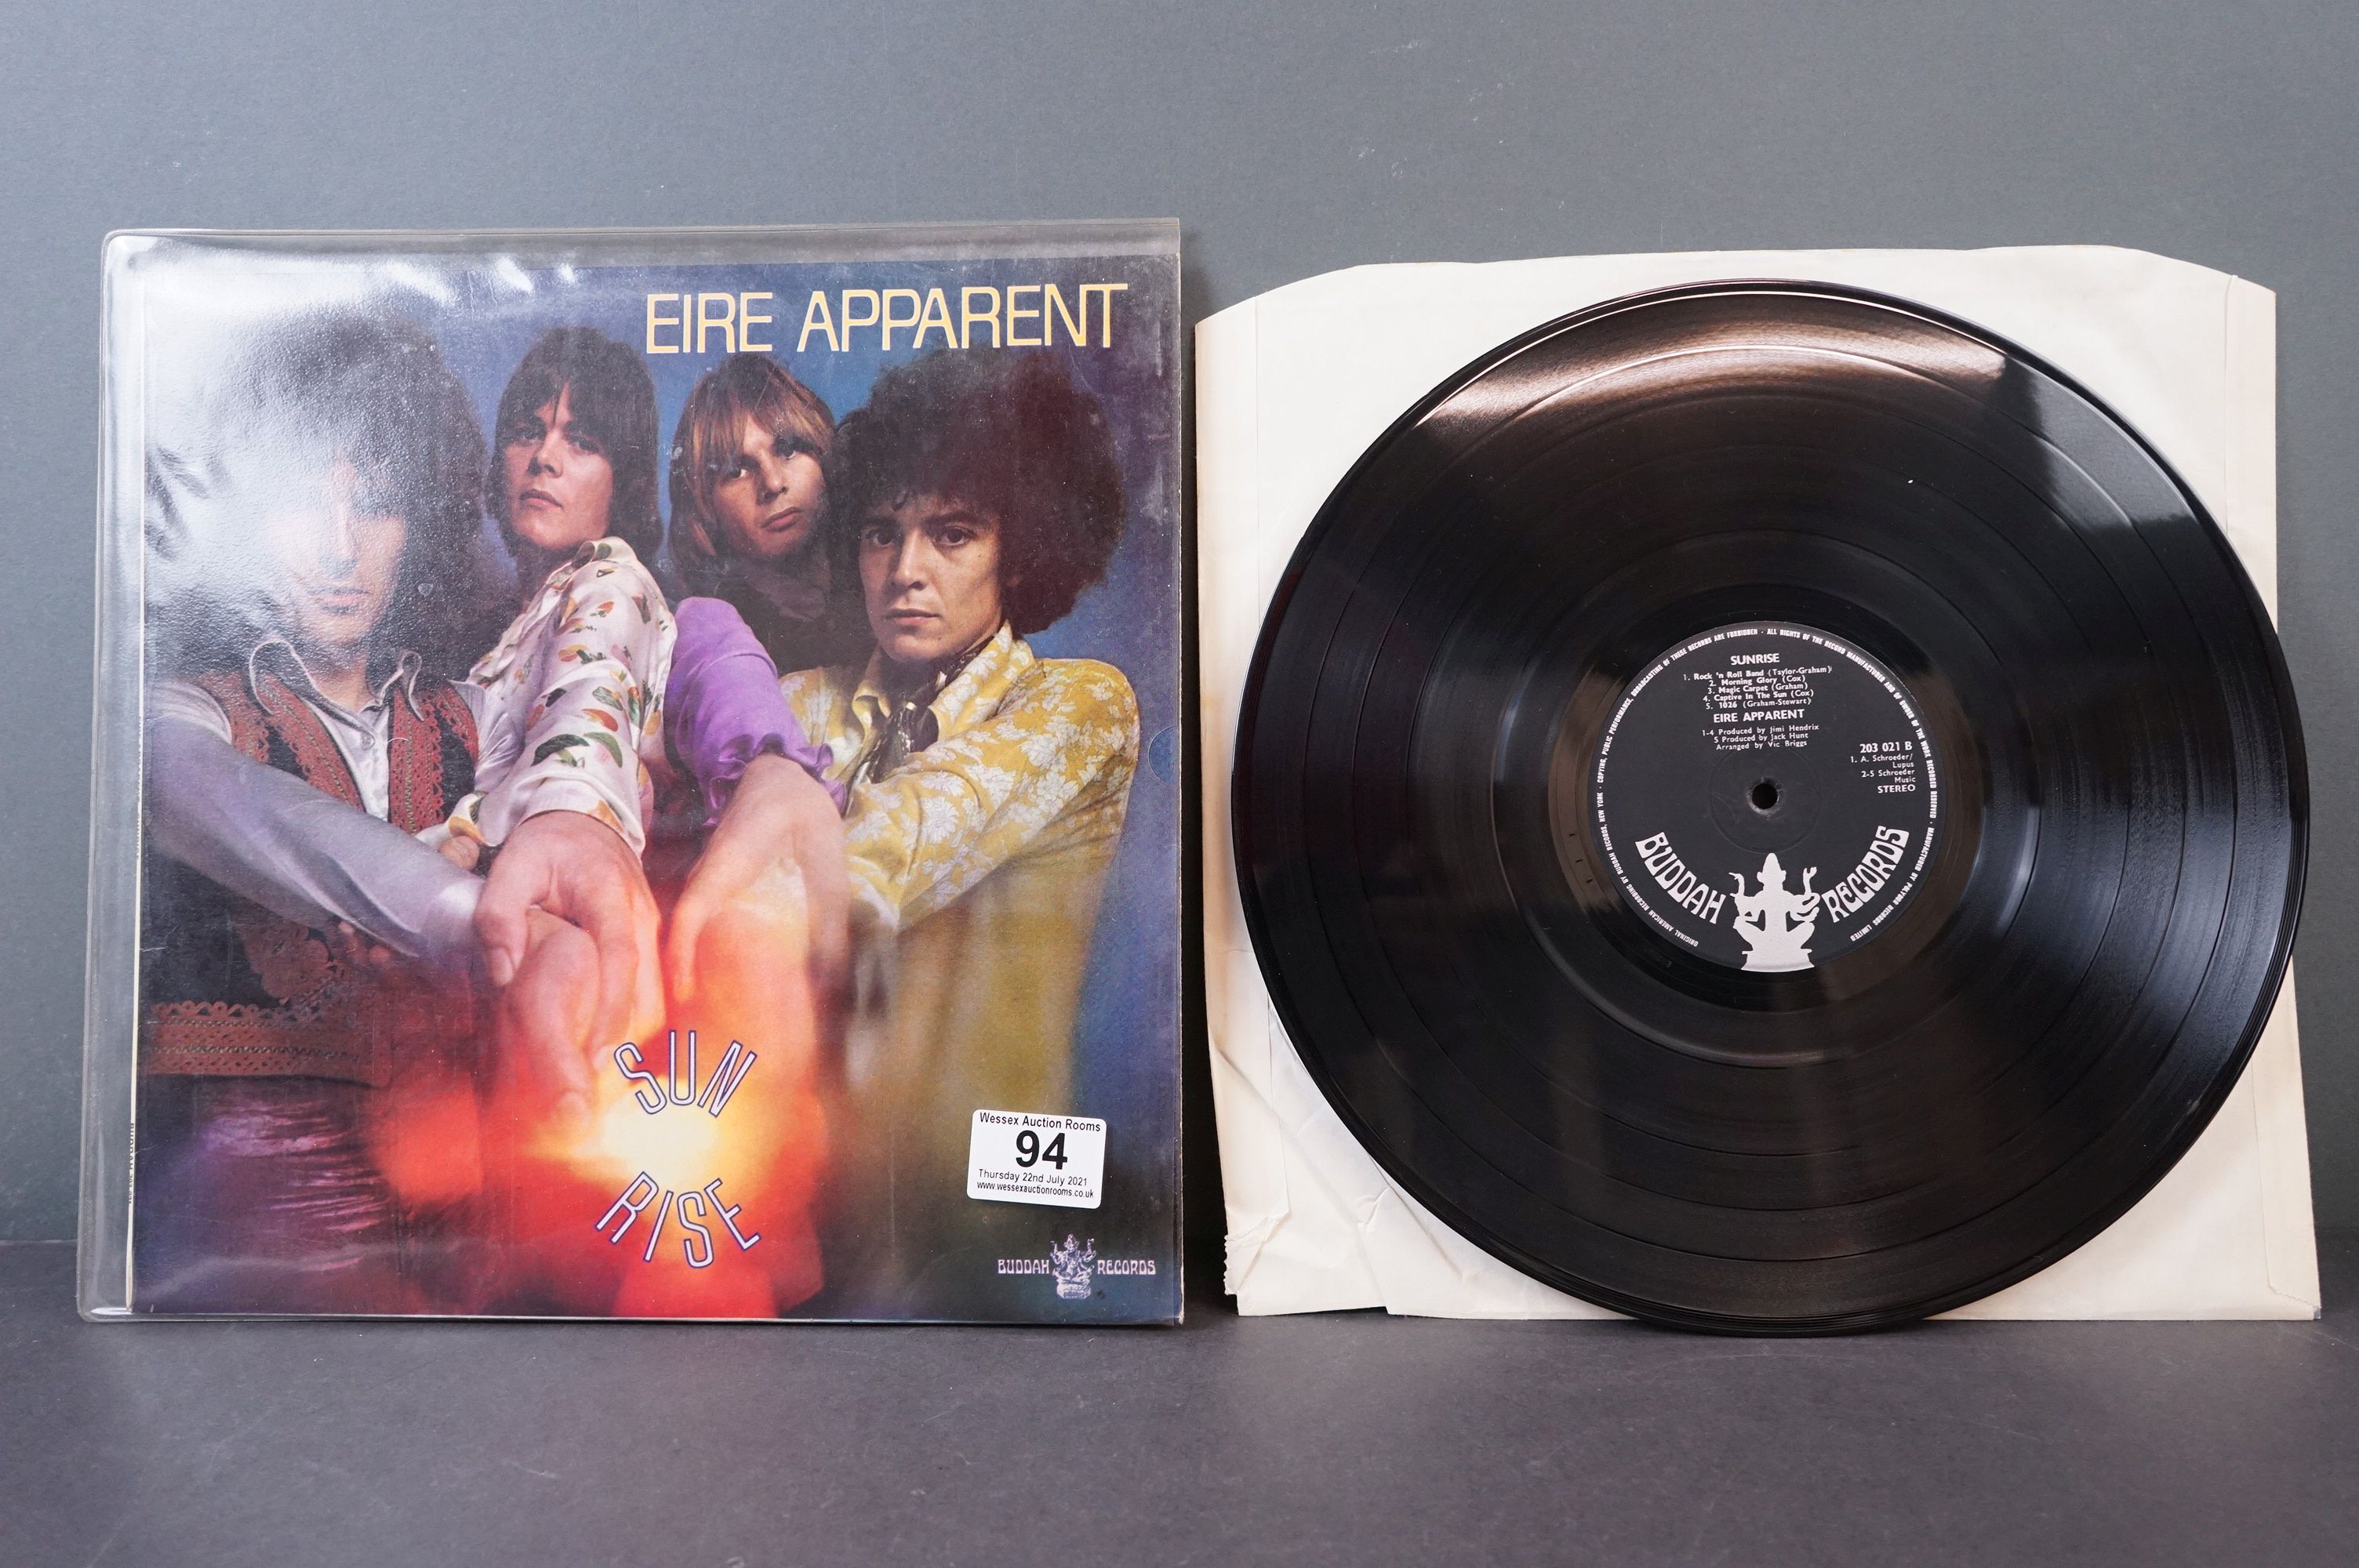 Vinyl - Psych - Eire Apparent - Sunrise (UK 1969,?Buddha Records) Produced by Jimi Hendrix vg+ - Image 2 of 4